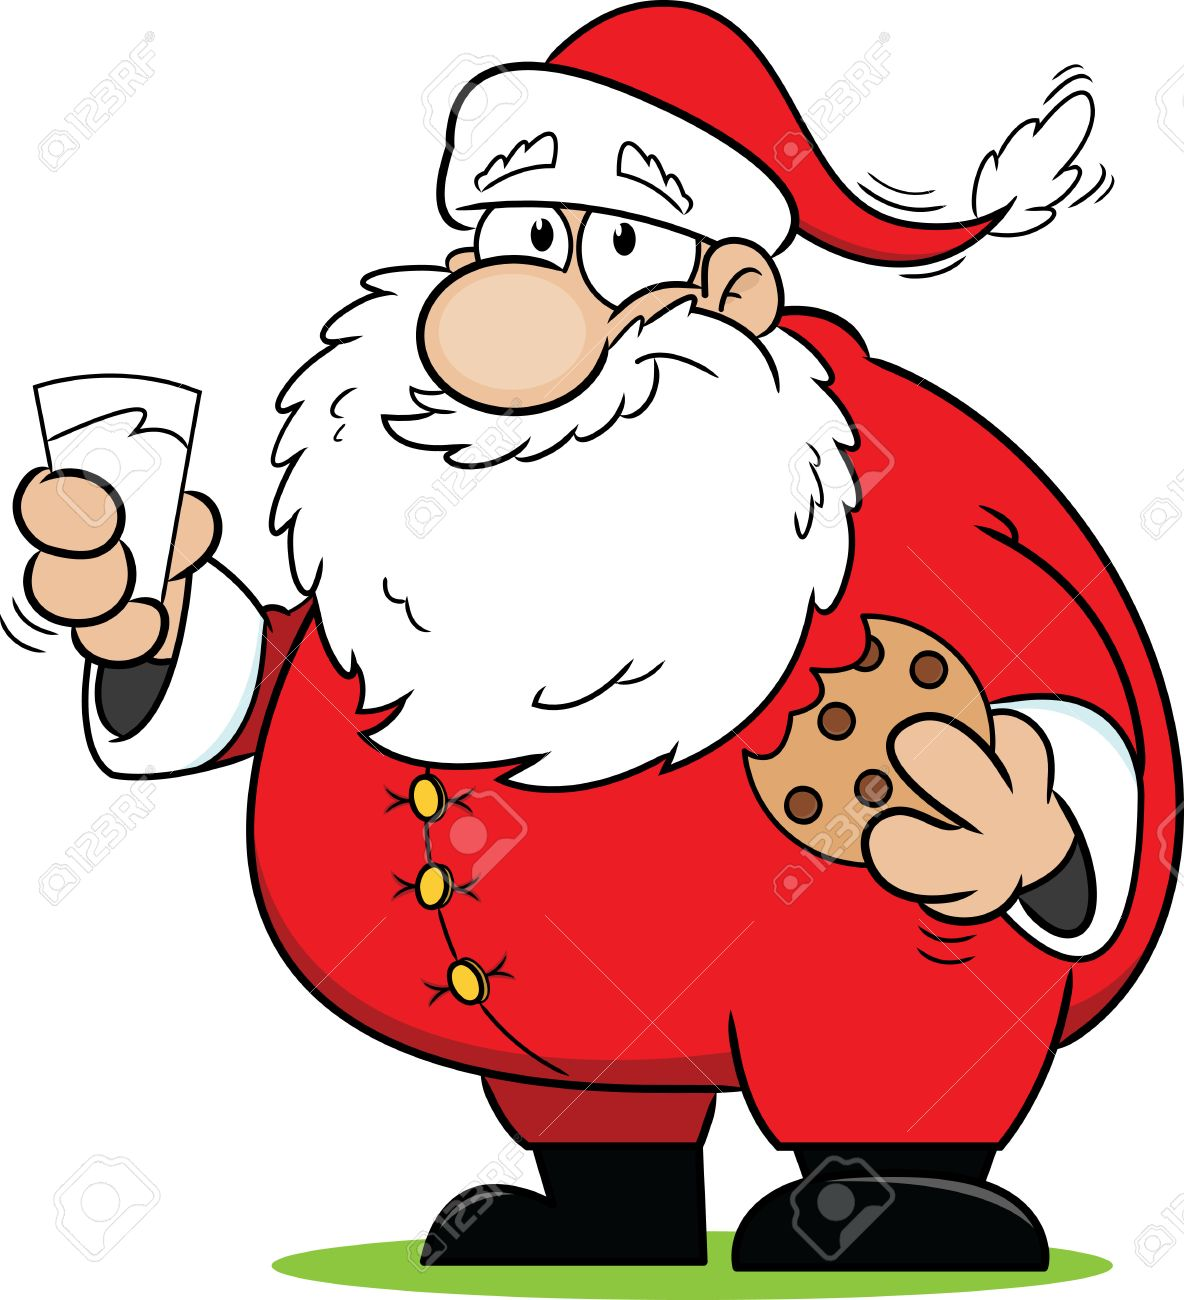 Cartoon Santa Claus Snacking On Some Cookies And Milk